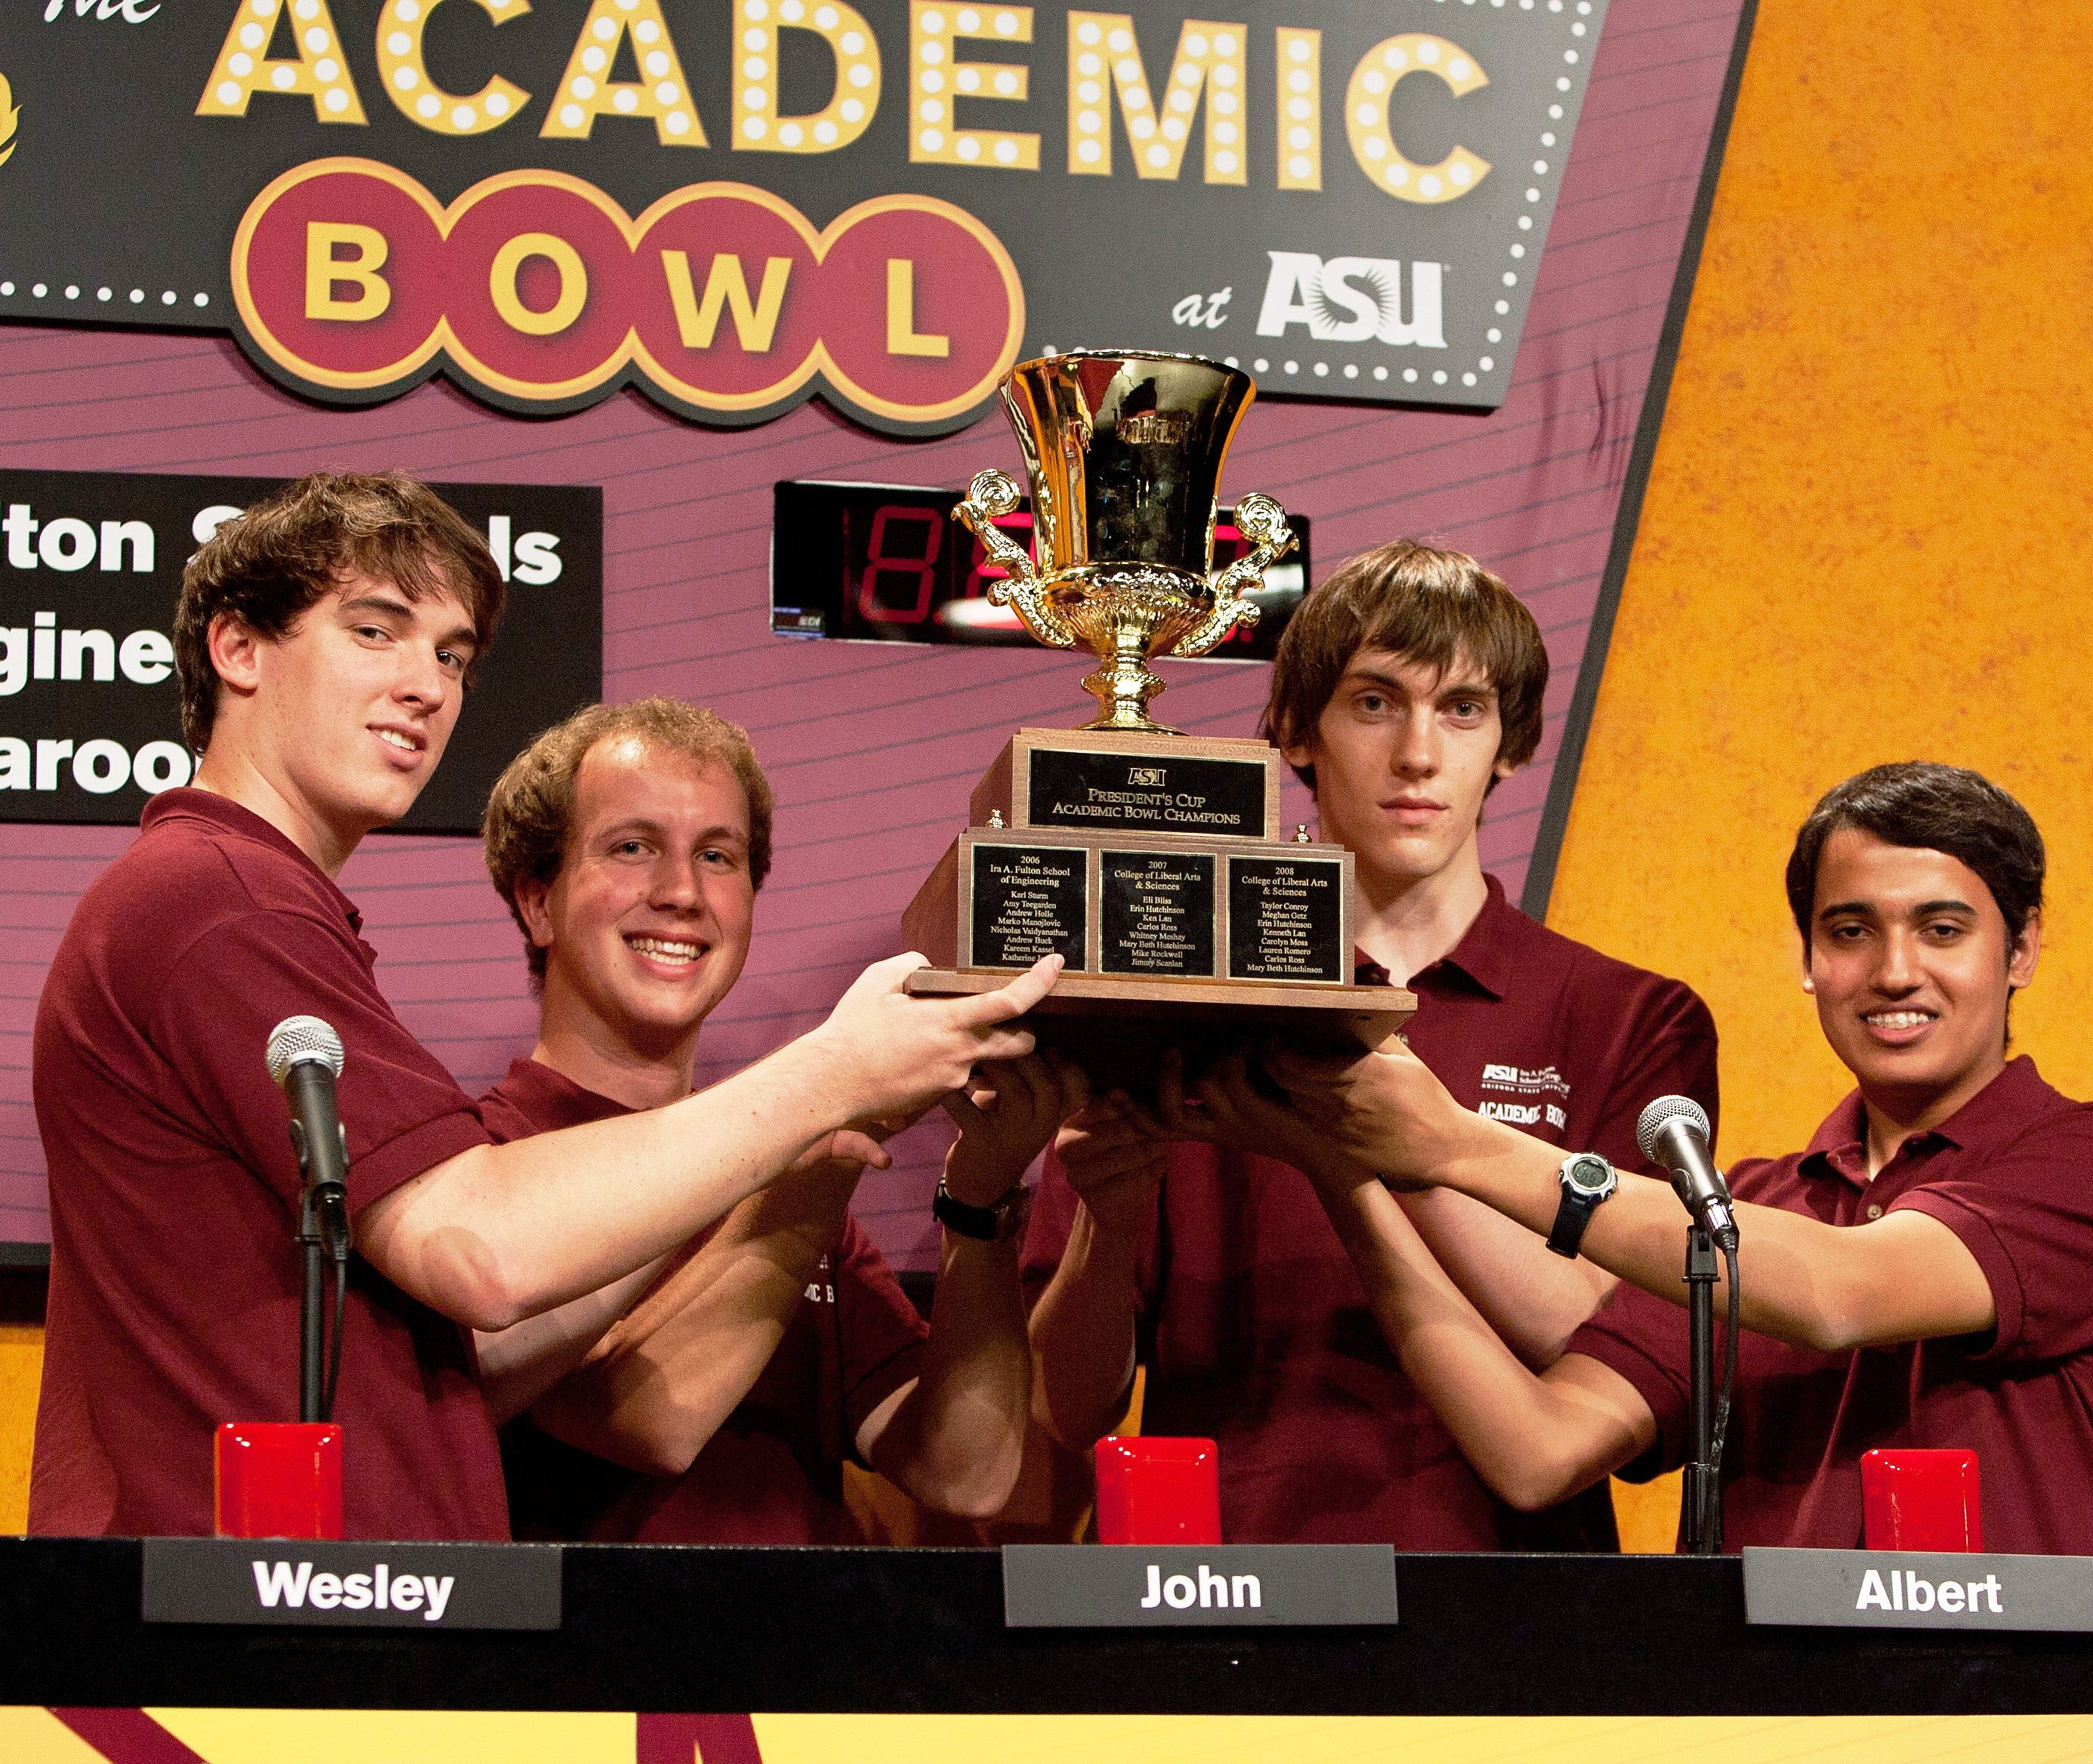 Ira A. Fulton Schools of Engineering team wins 2012 ASU Academic Bowl